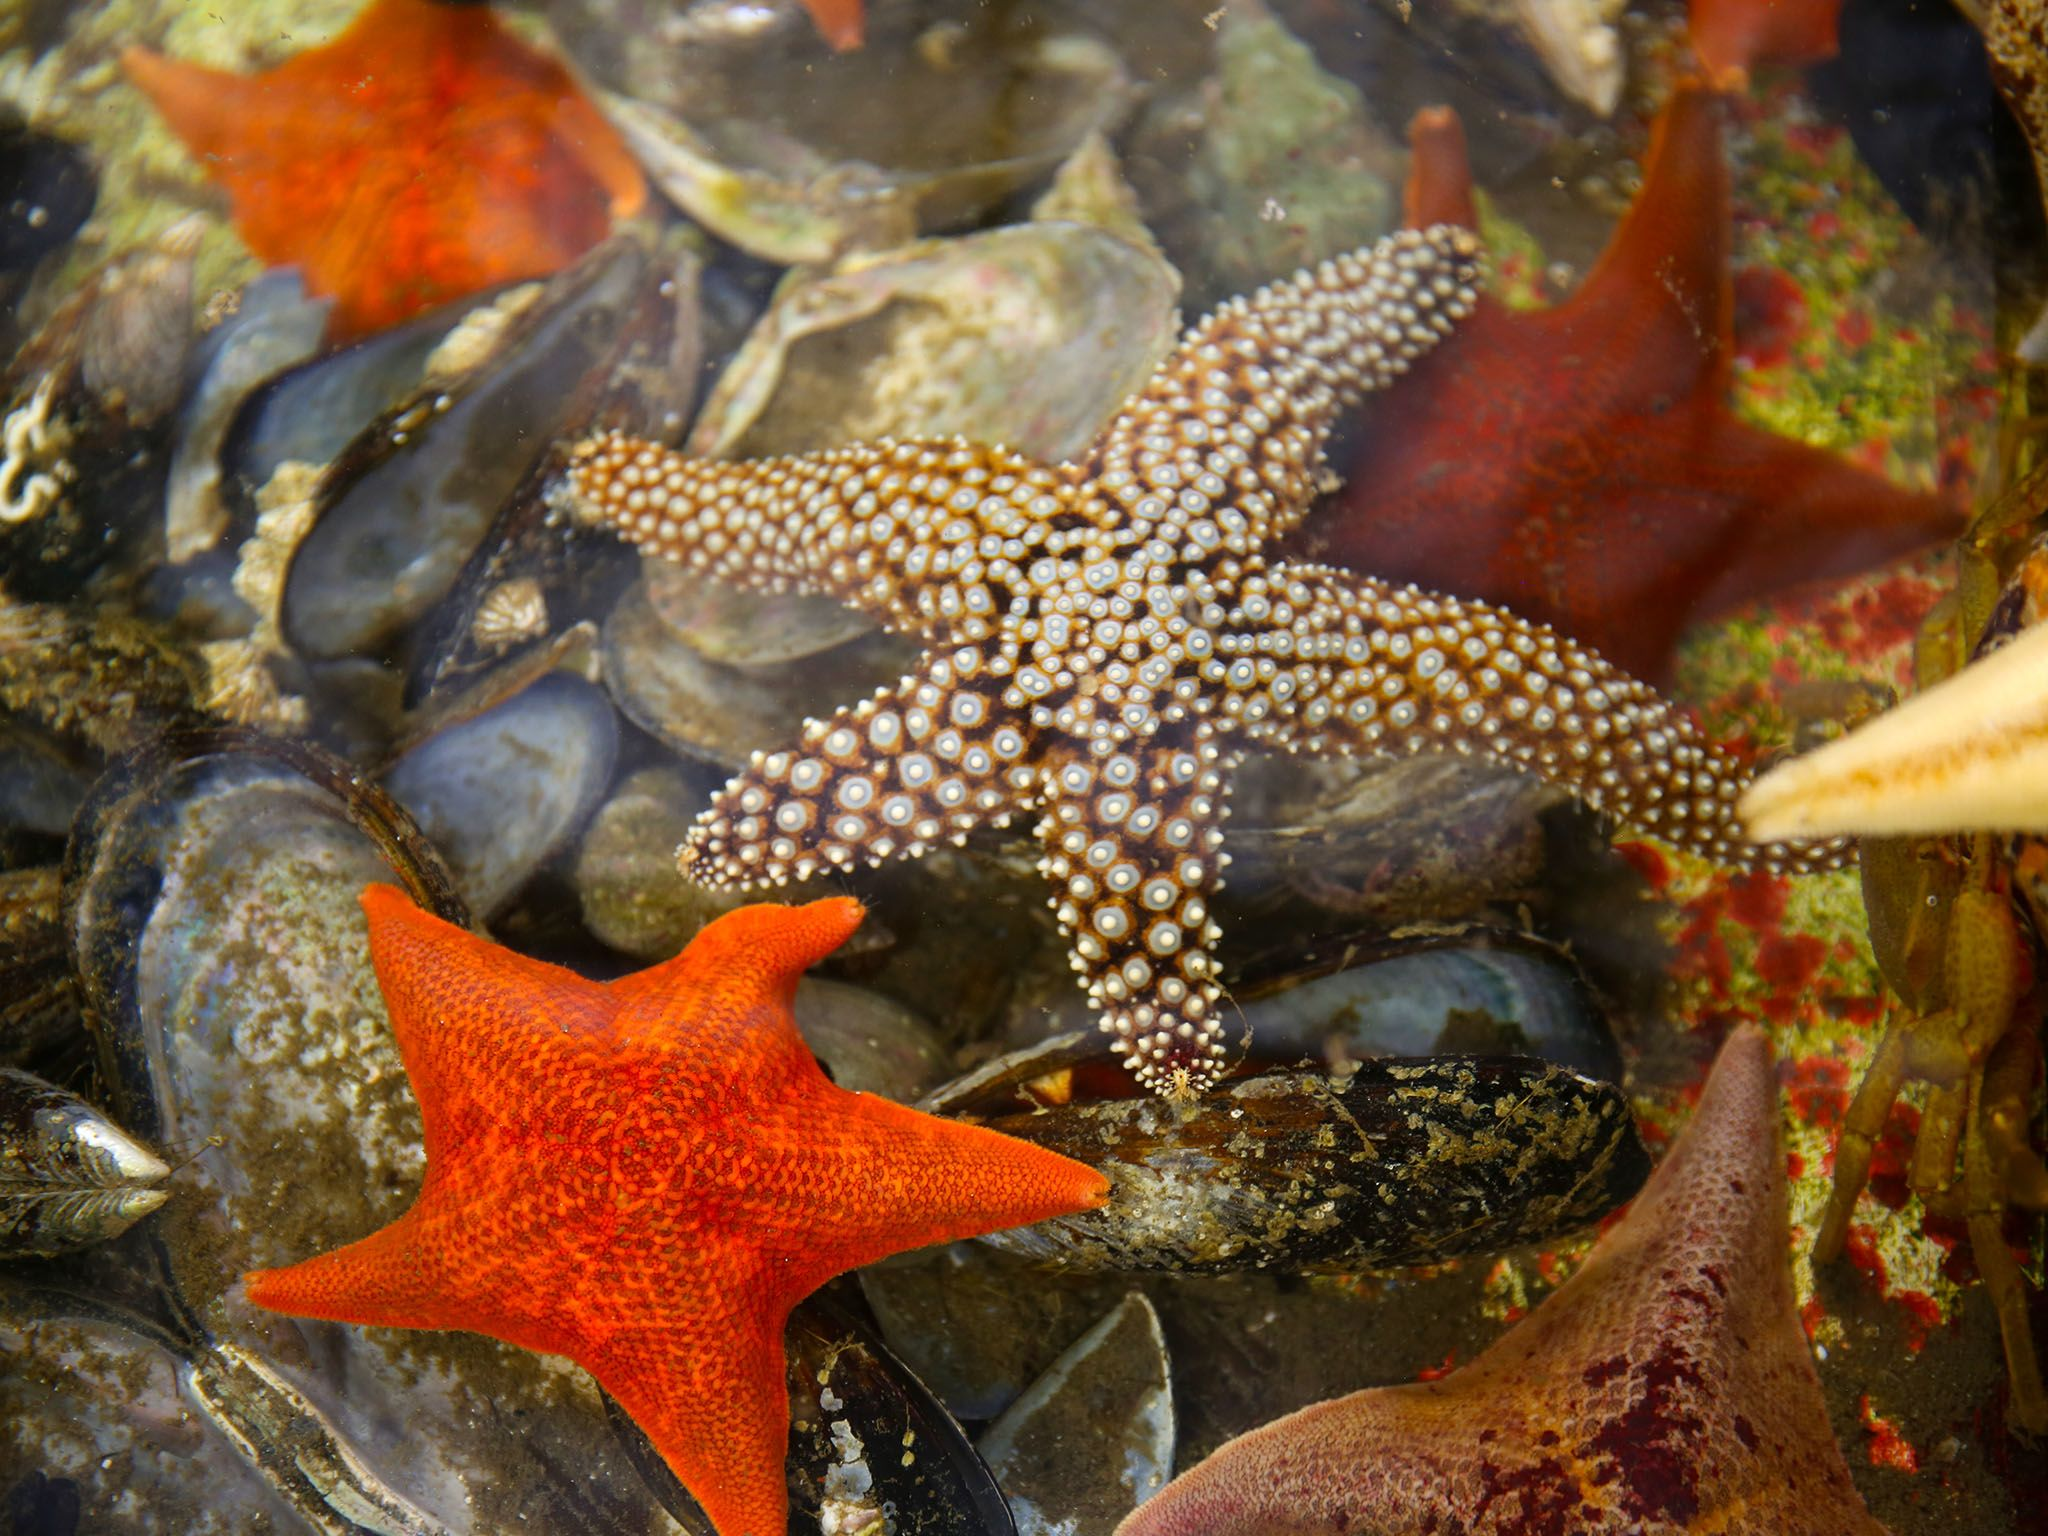 Santa Barbara, Calif.: Some star fish in a tide pool at UC Santa Barbara. This image is from... [Photo of the day - فوریه 2016]